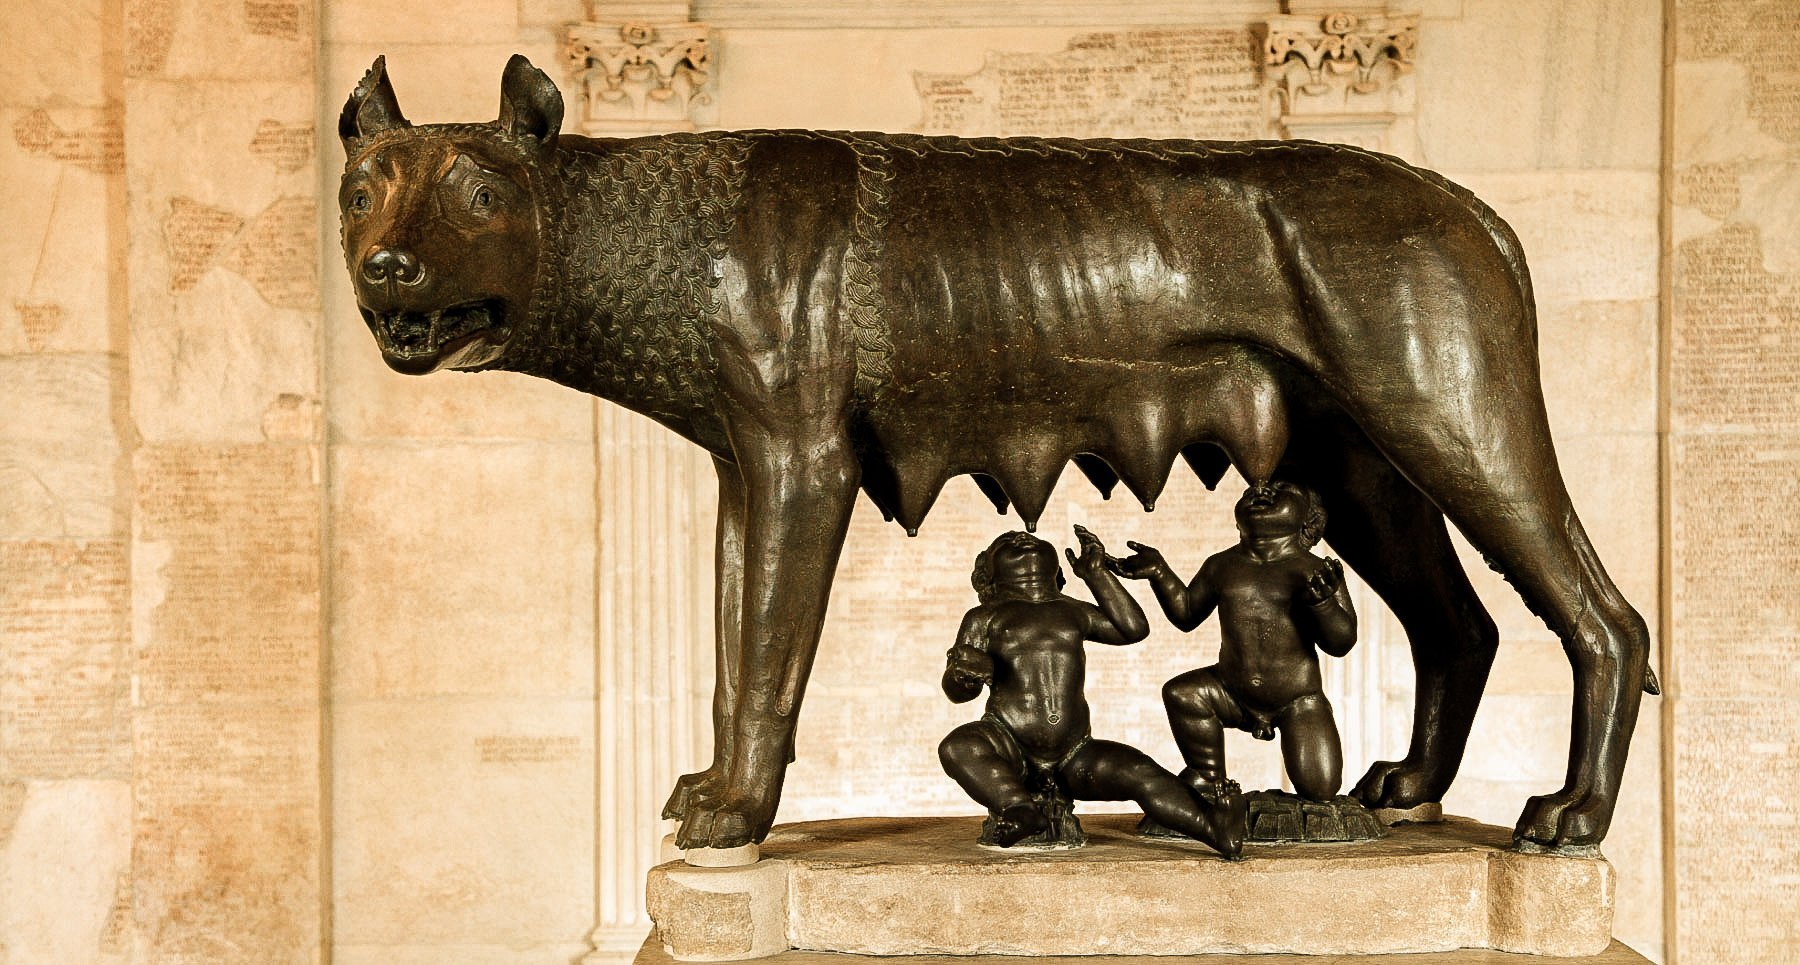 Bronze statue of the She-Wolf suckling the infants Remus and Romulus.